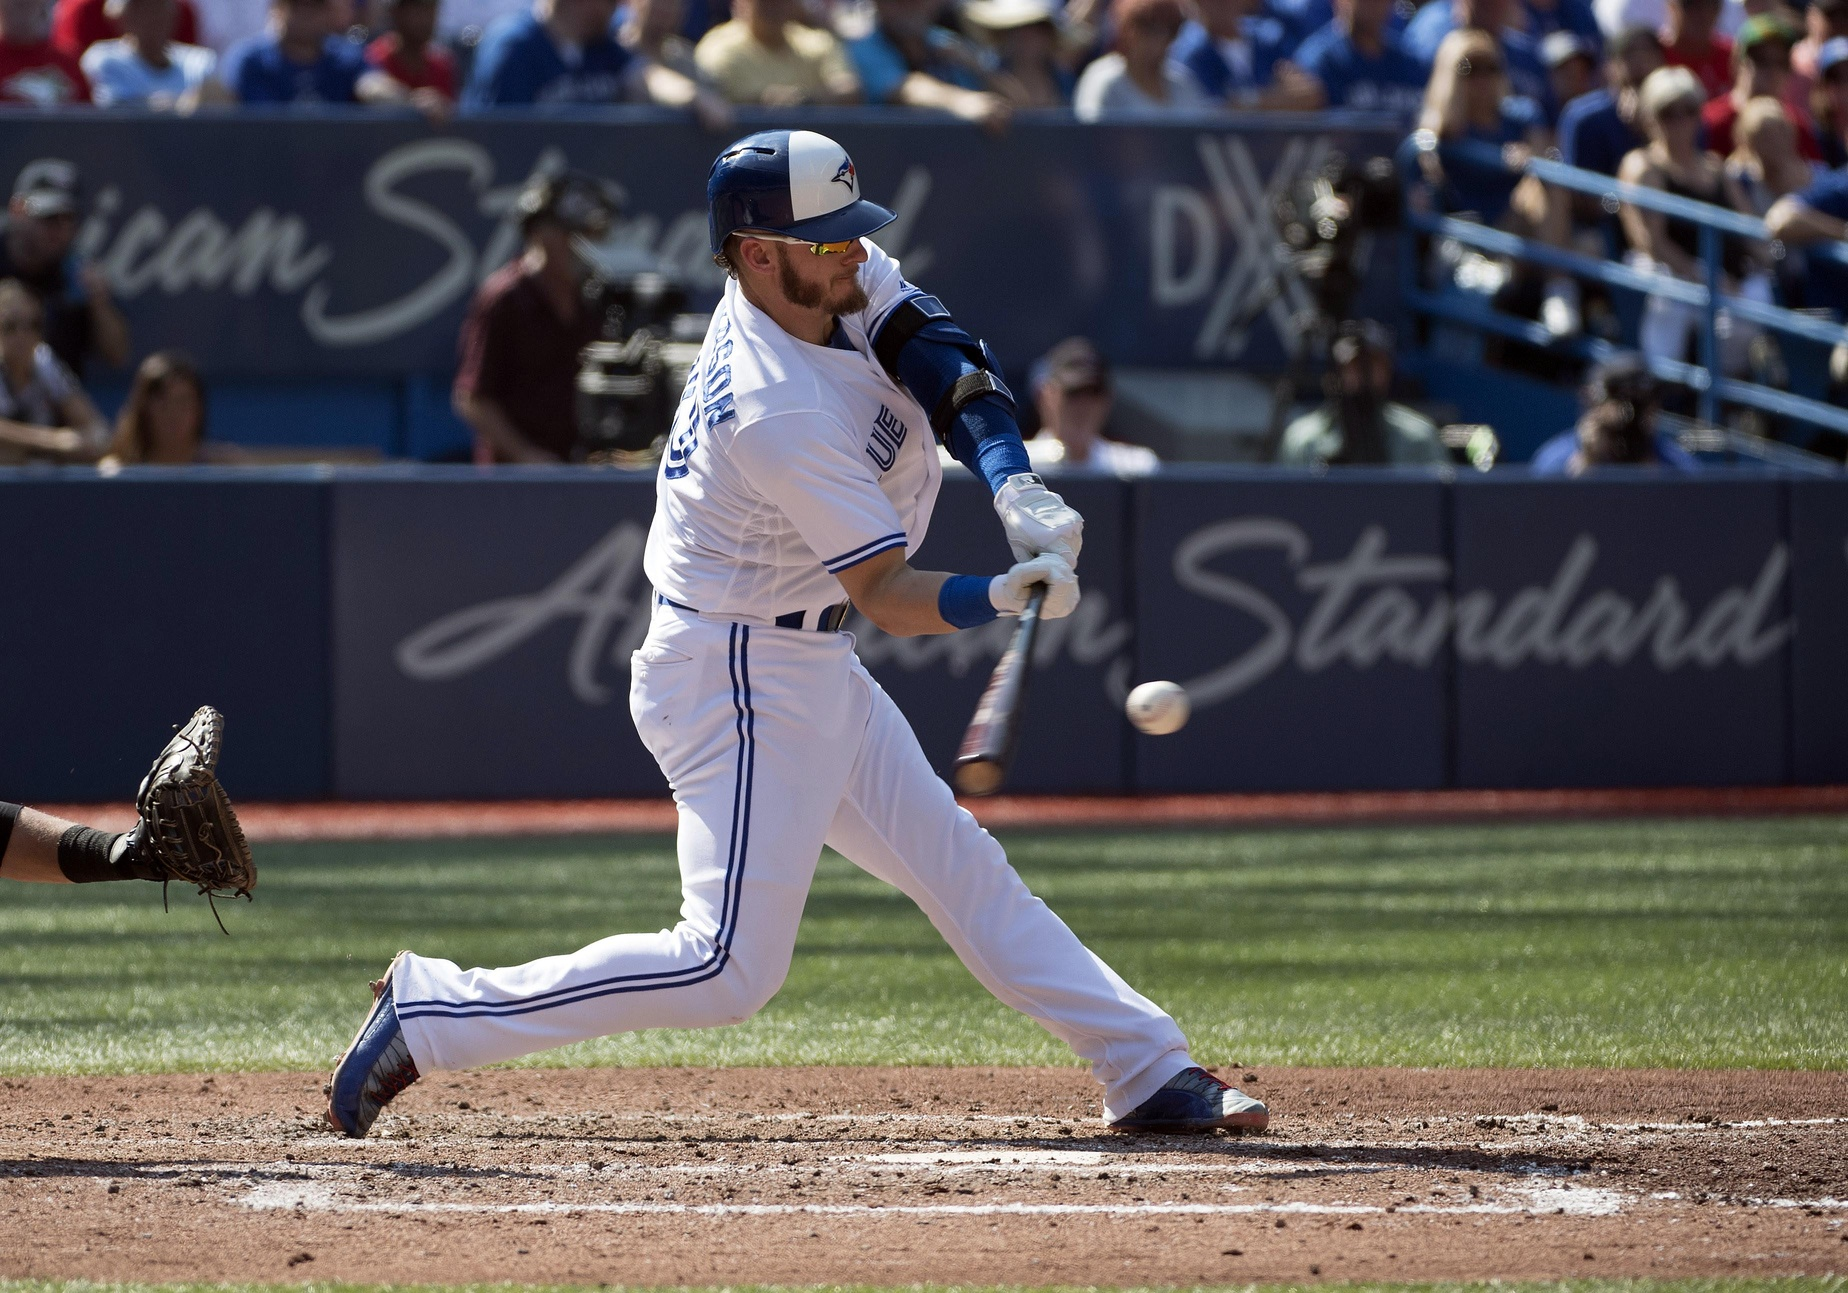 Josh-donaldson-extension-blue-jays